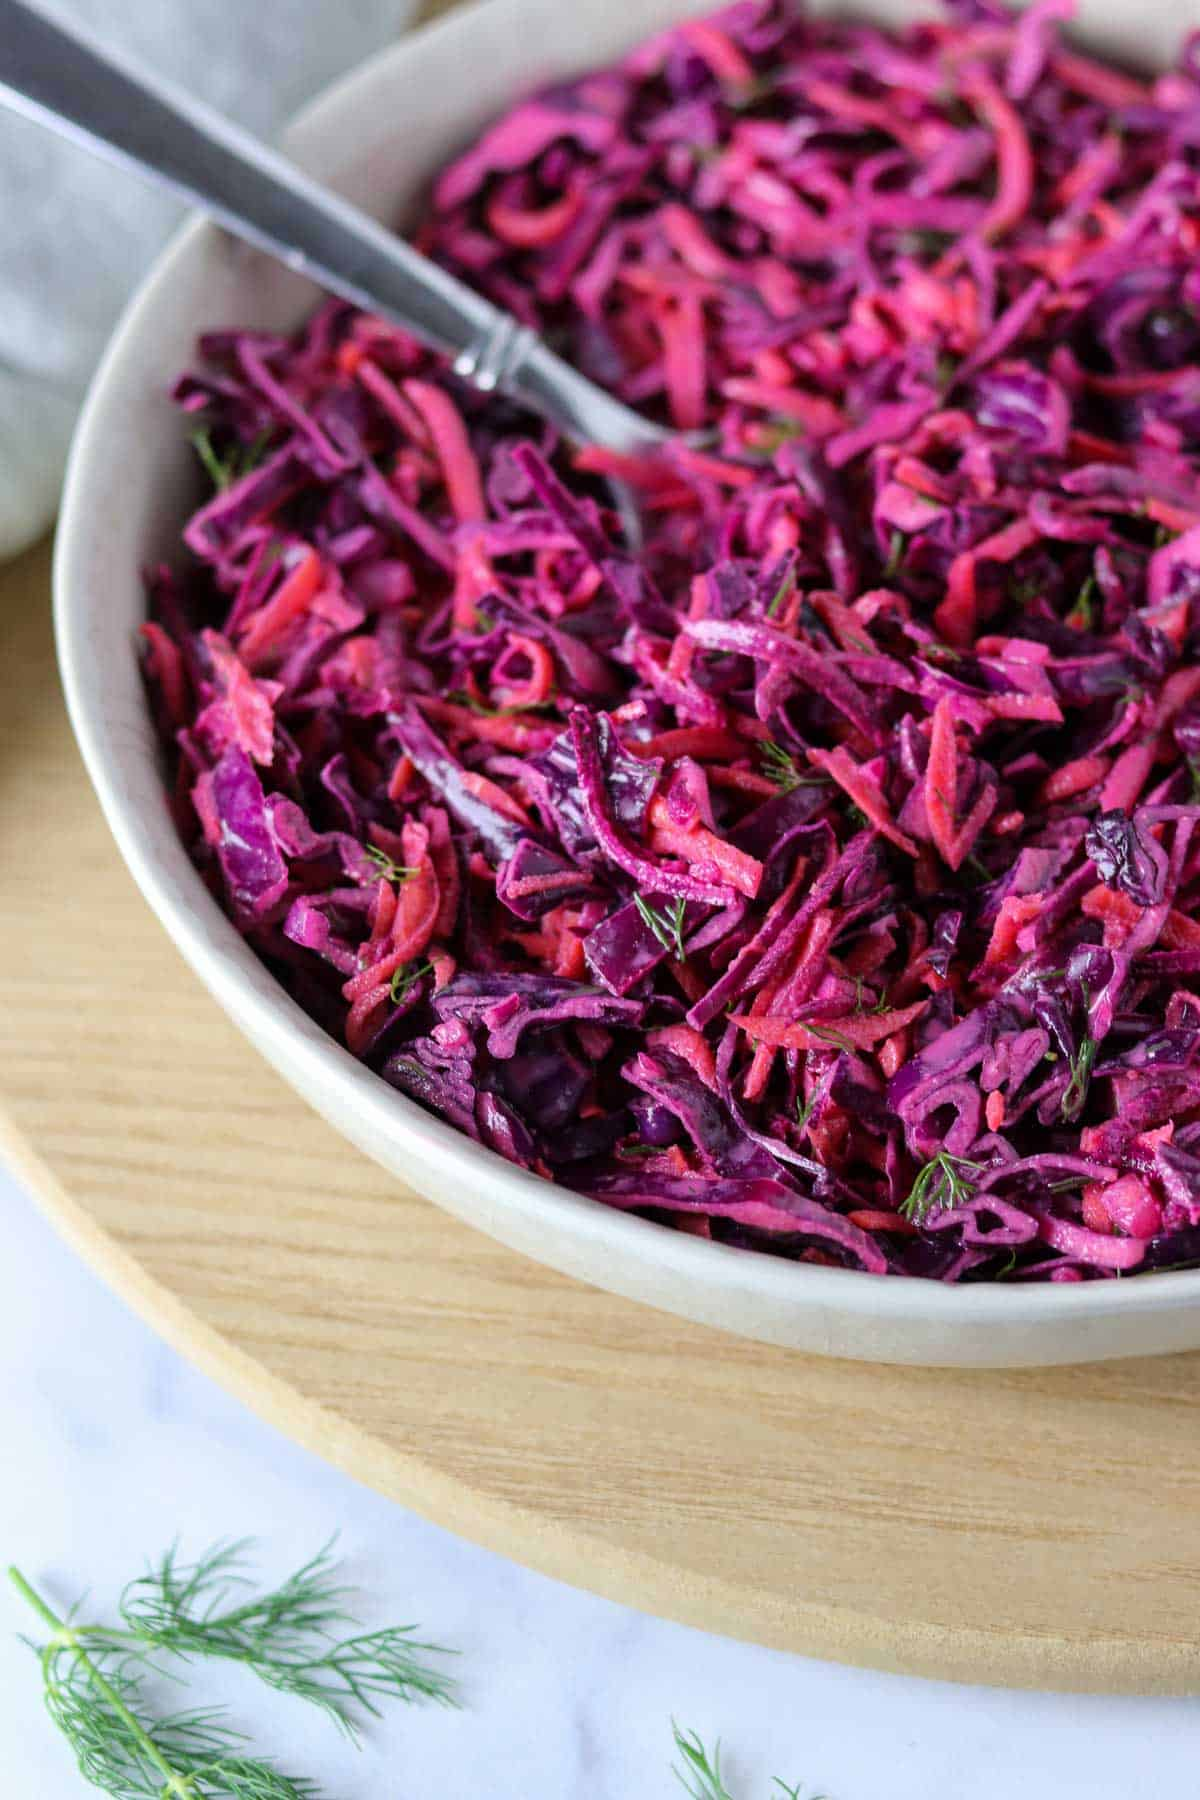 Red Cabbage Slaw in a bowl with a spoon on a wooden surface.